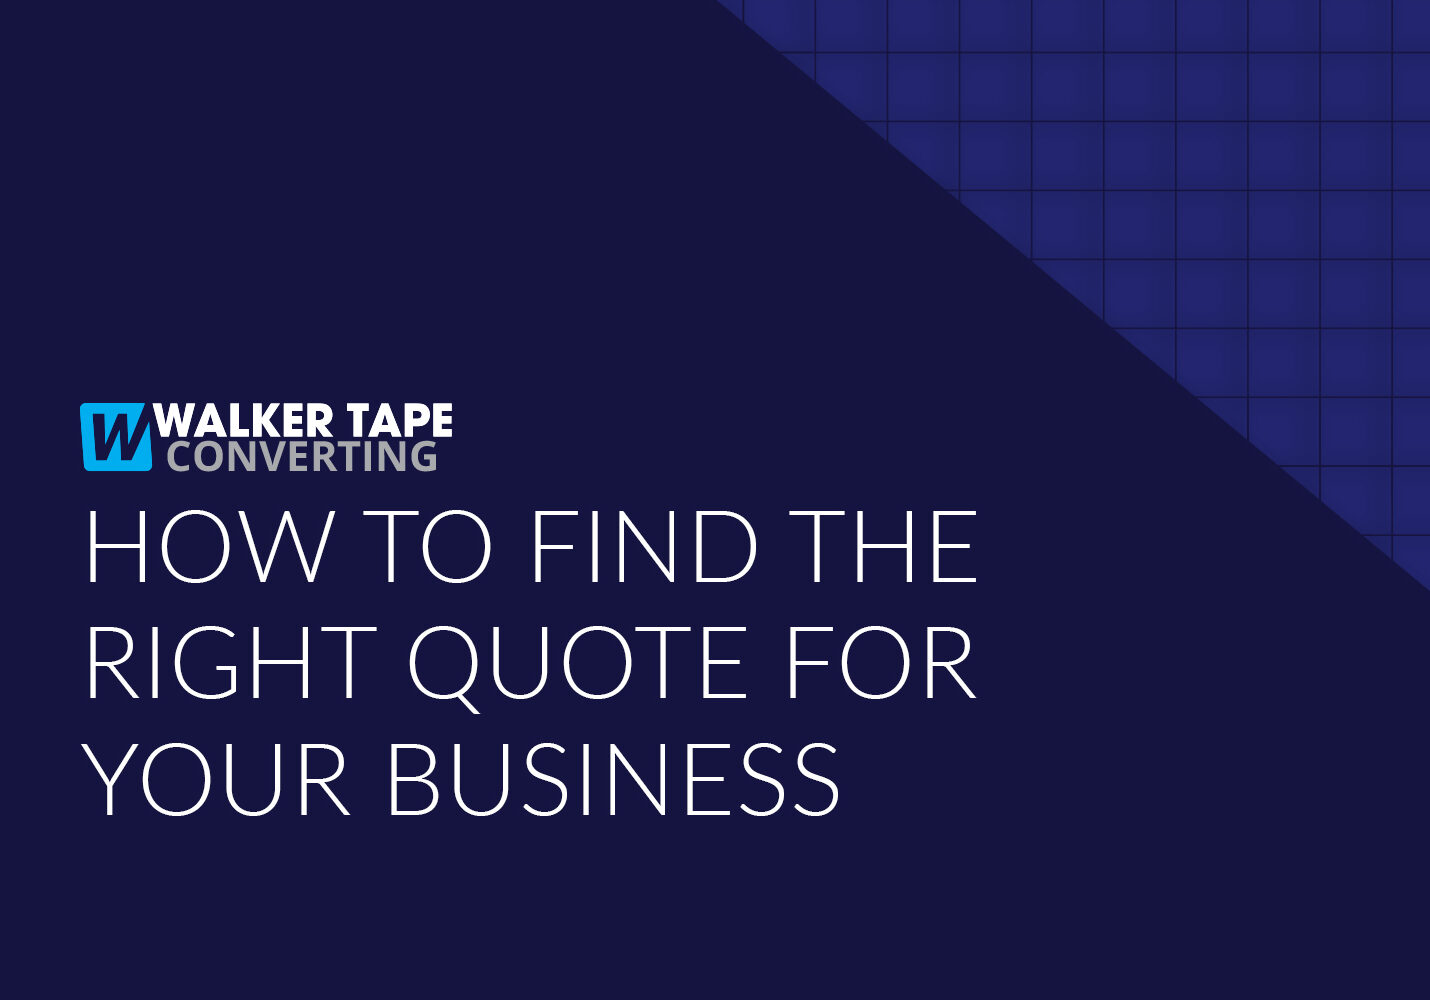 How To Find The Right Quote For Your Business